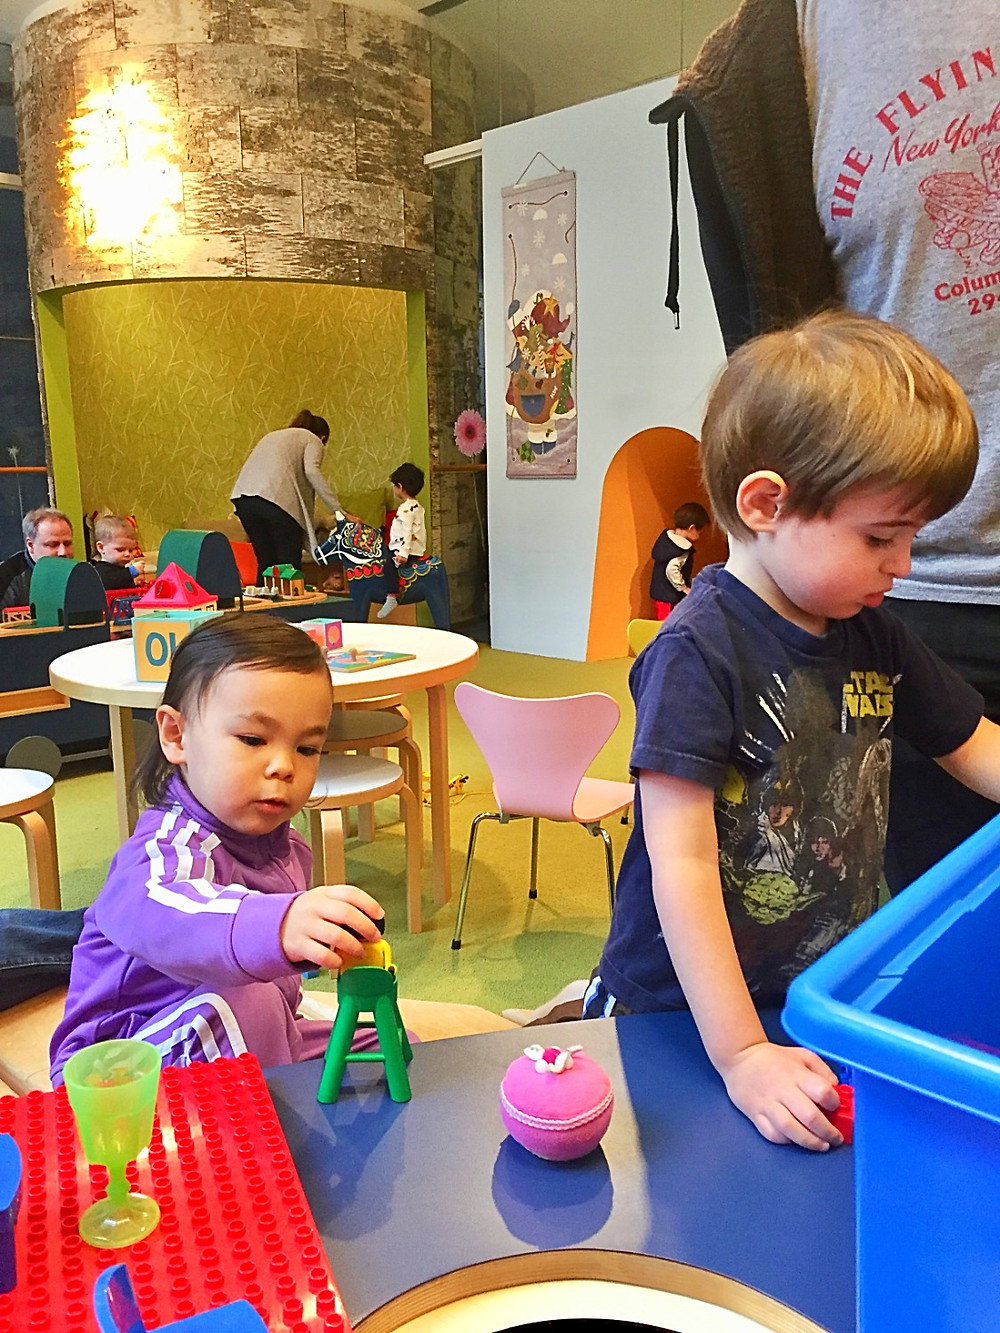 Scandinavia House, Heimbold Playing and Learning Center, indoor playspace, NYC with kids, Curious G and Me, Indoor play space guide